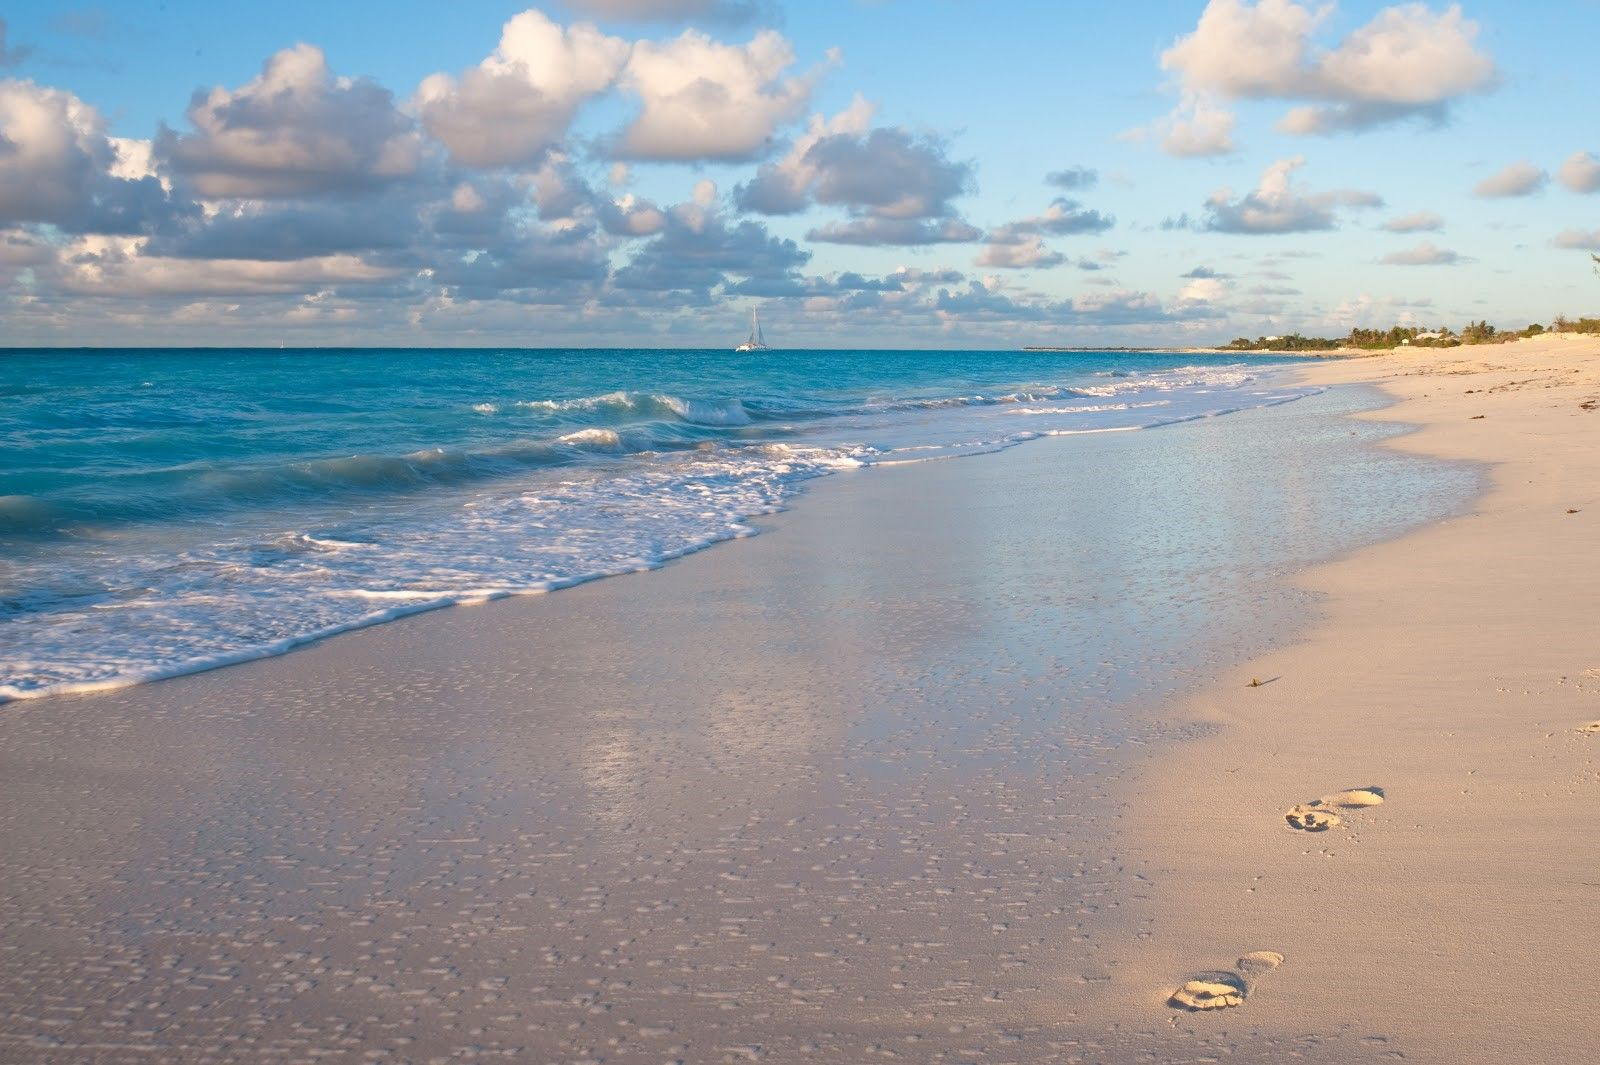 Plan An Adventure In The Turks And Caicos – Day Trip To Fort George Cay